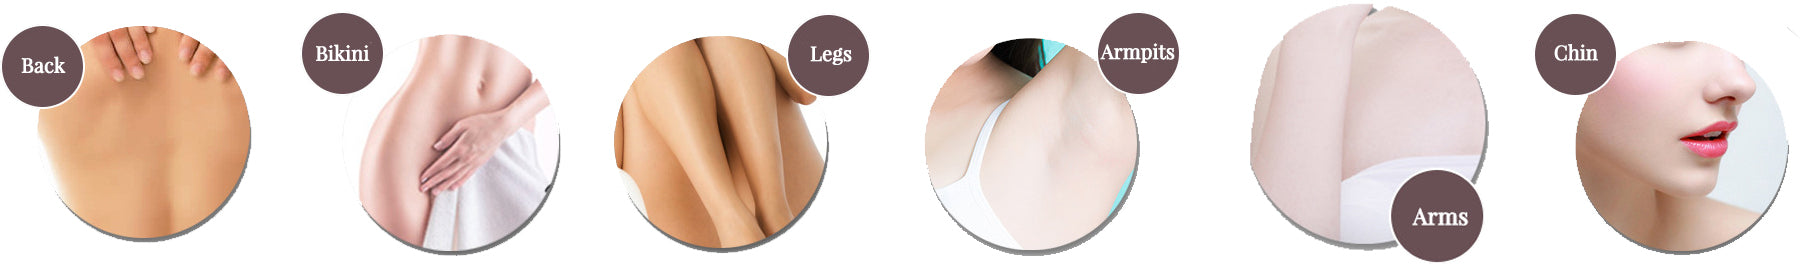 IPL Hair Removal for Back Bikini Legs Armpit Arms Chin